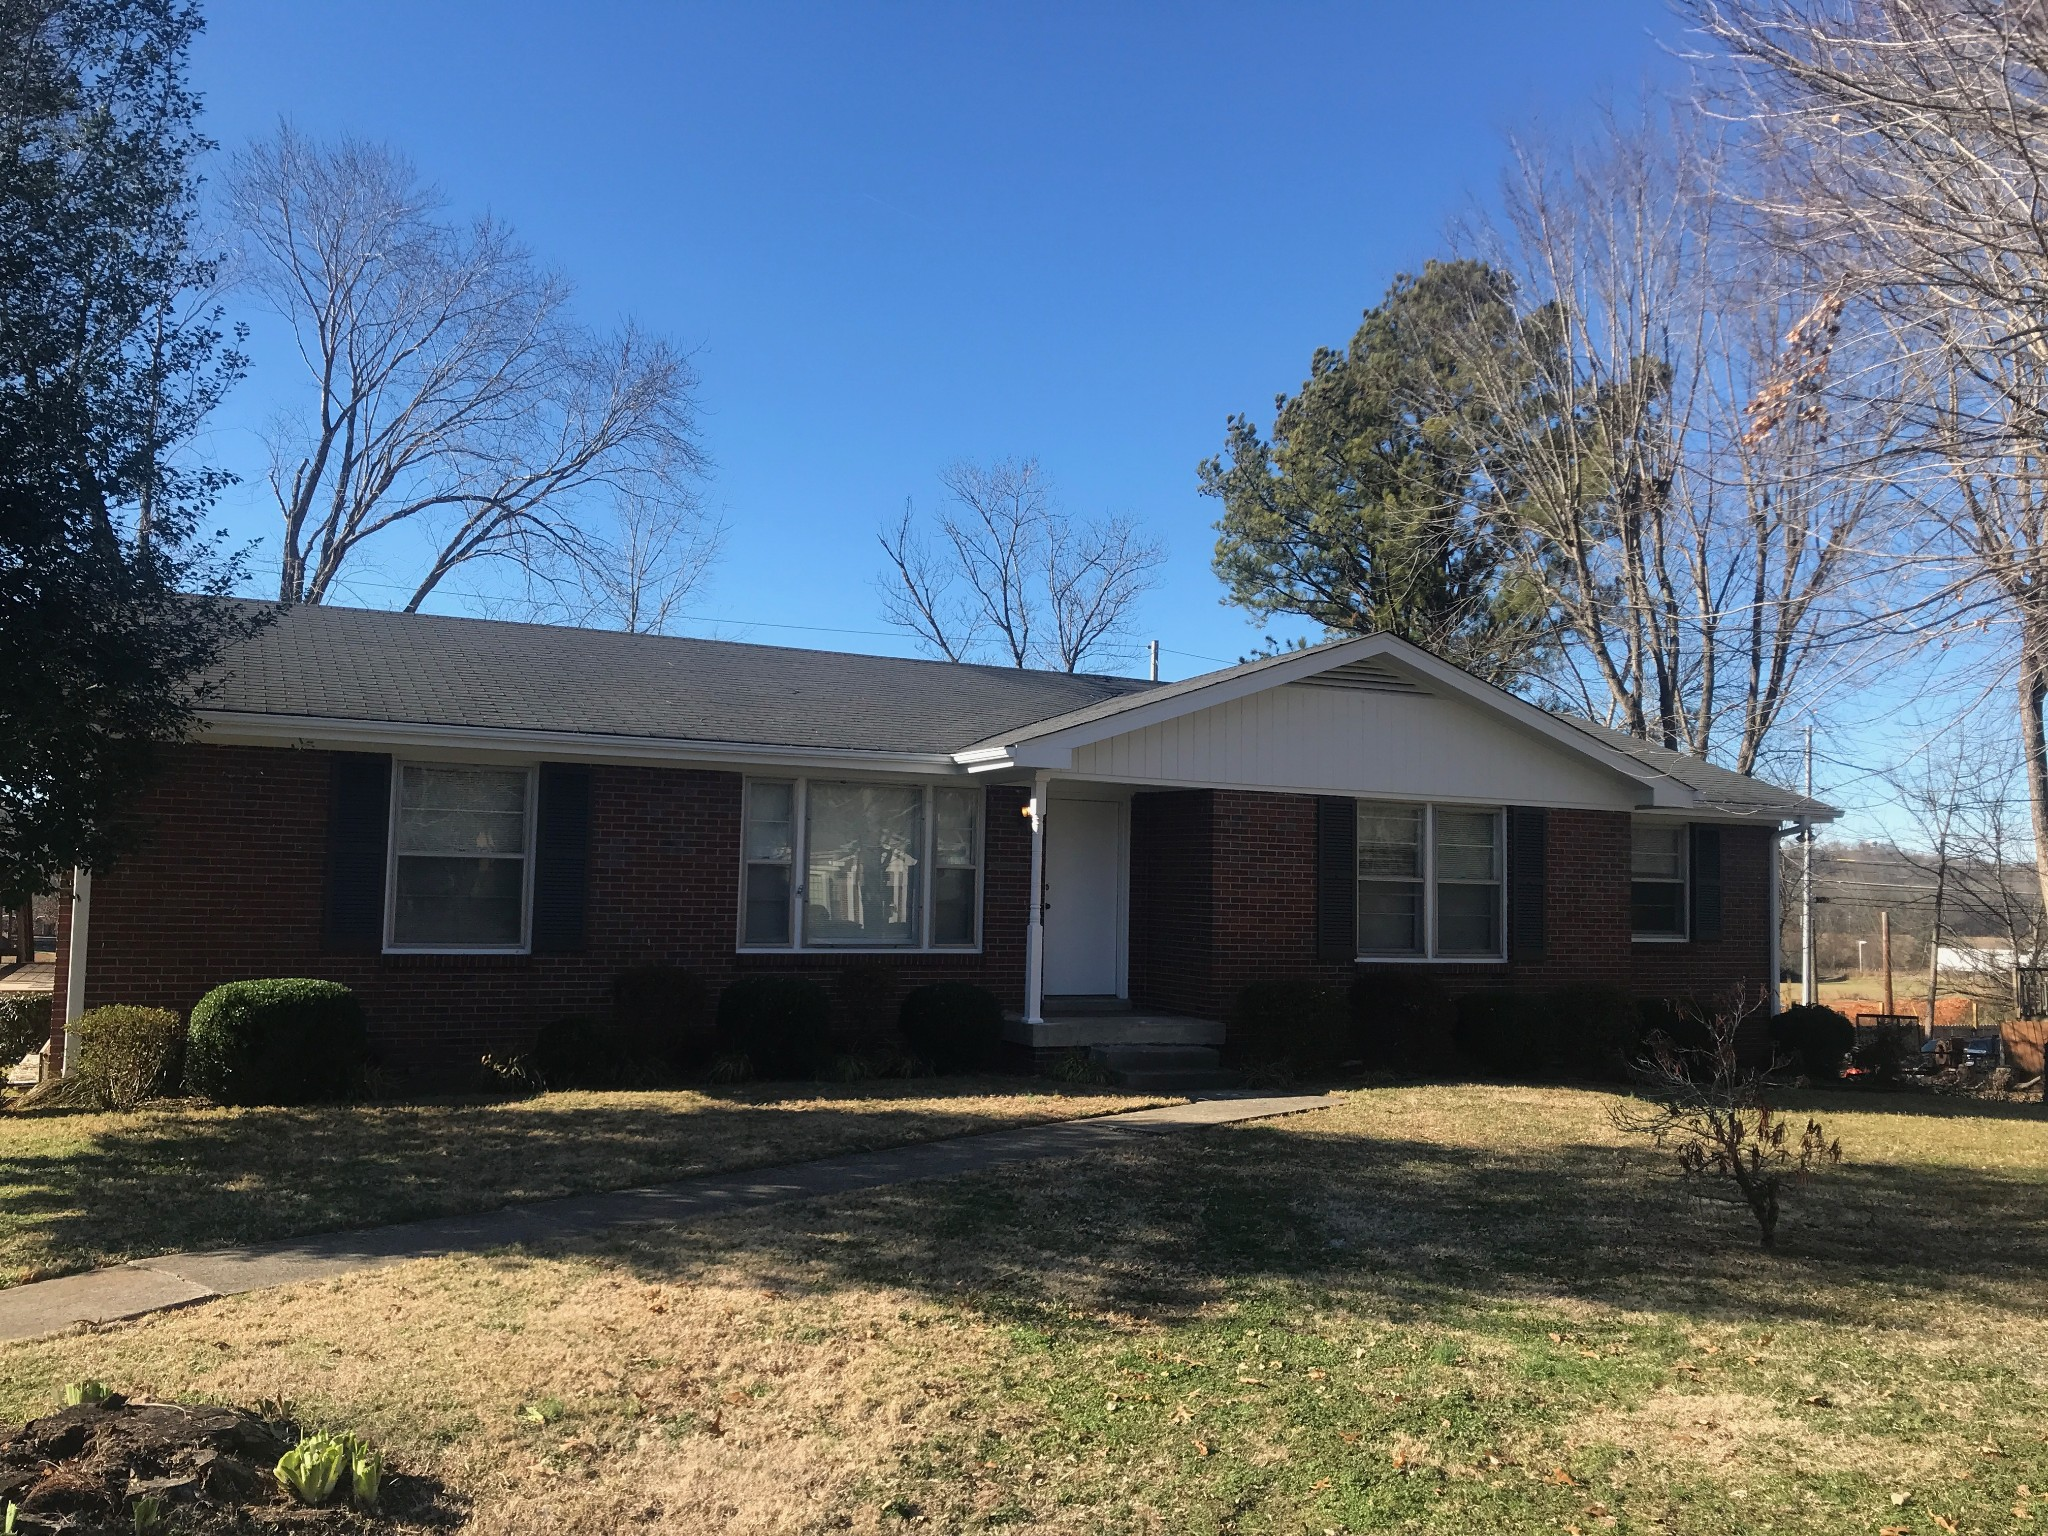 Beautifully renovated one owner ranch on full finished basement.  This 3 bedroom 2.5 bath house has